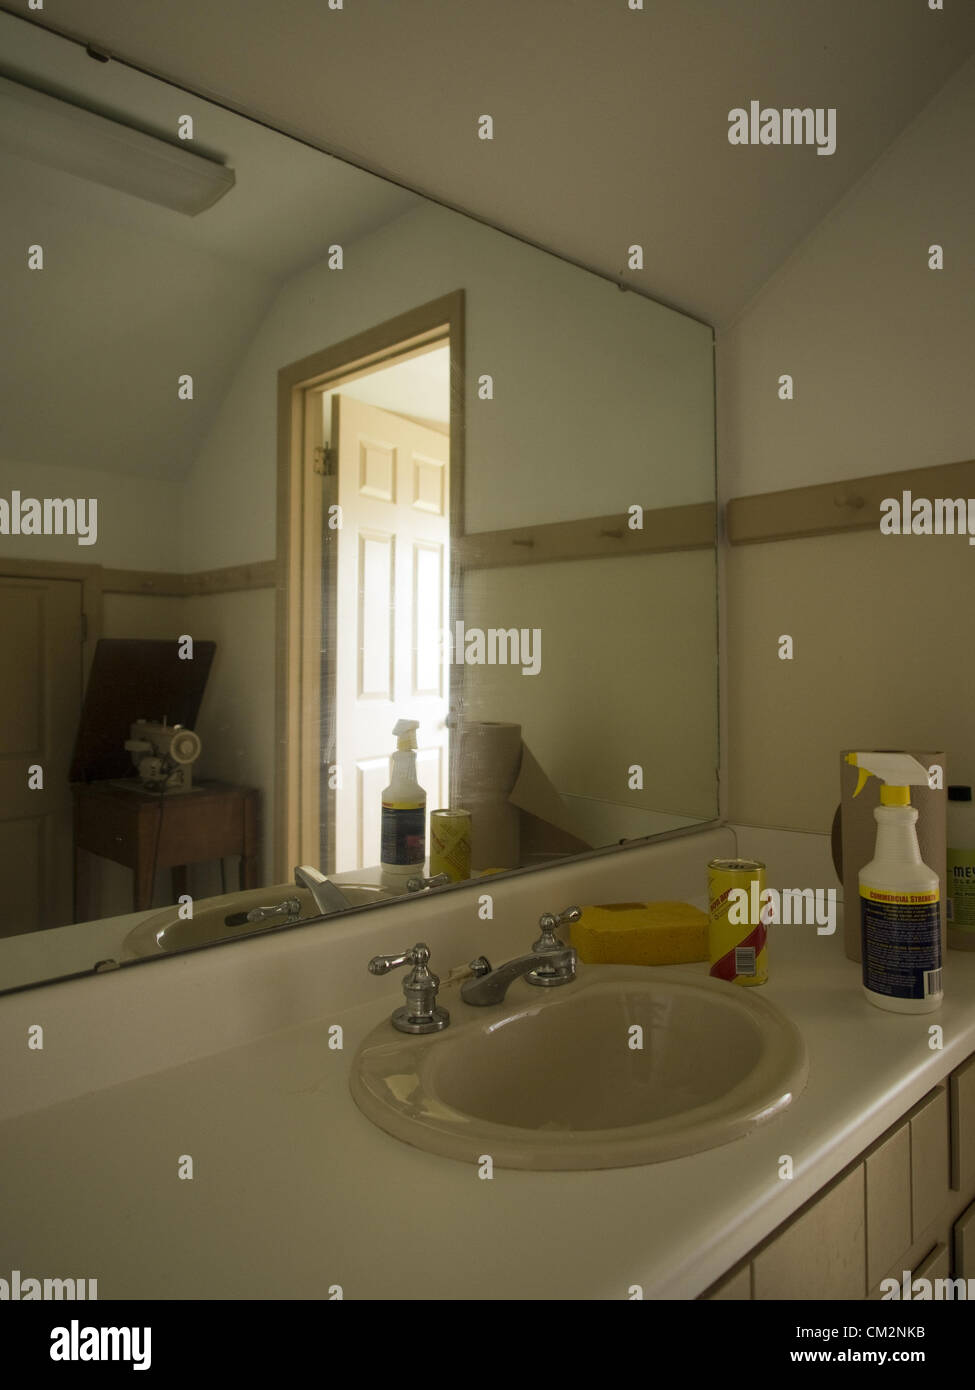 March 9, 2012 - Talahassee, Florida, Uniited States - Empty bathroom ...